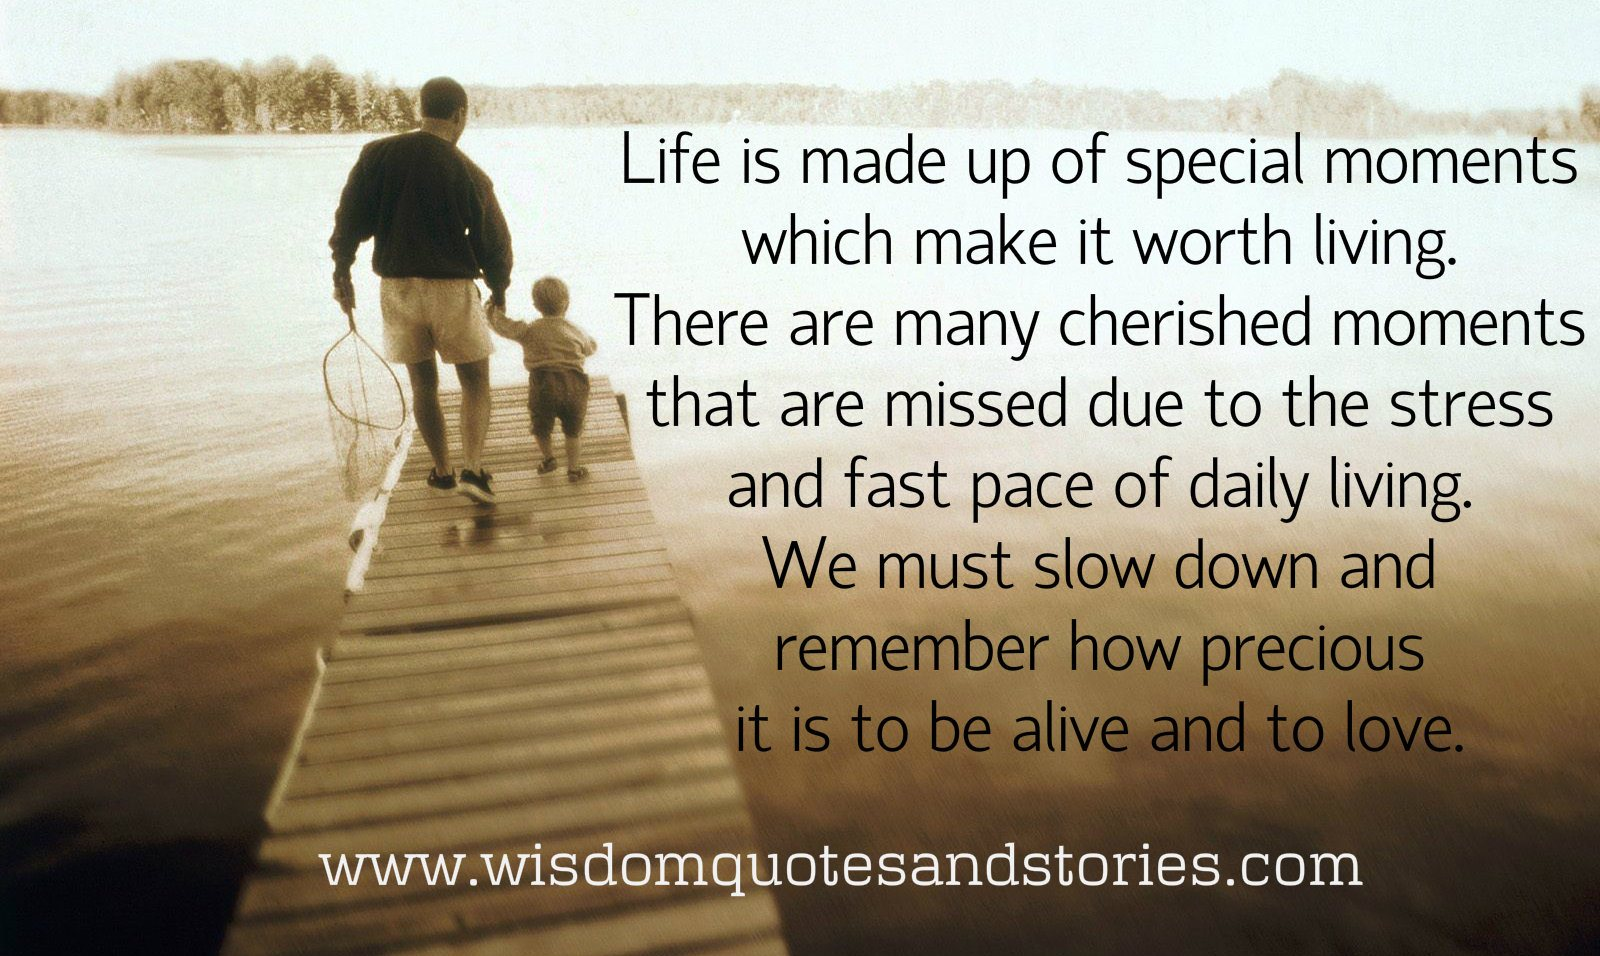 Life is made up of special moments which make it worth living. Remember how precious it is to be alive